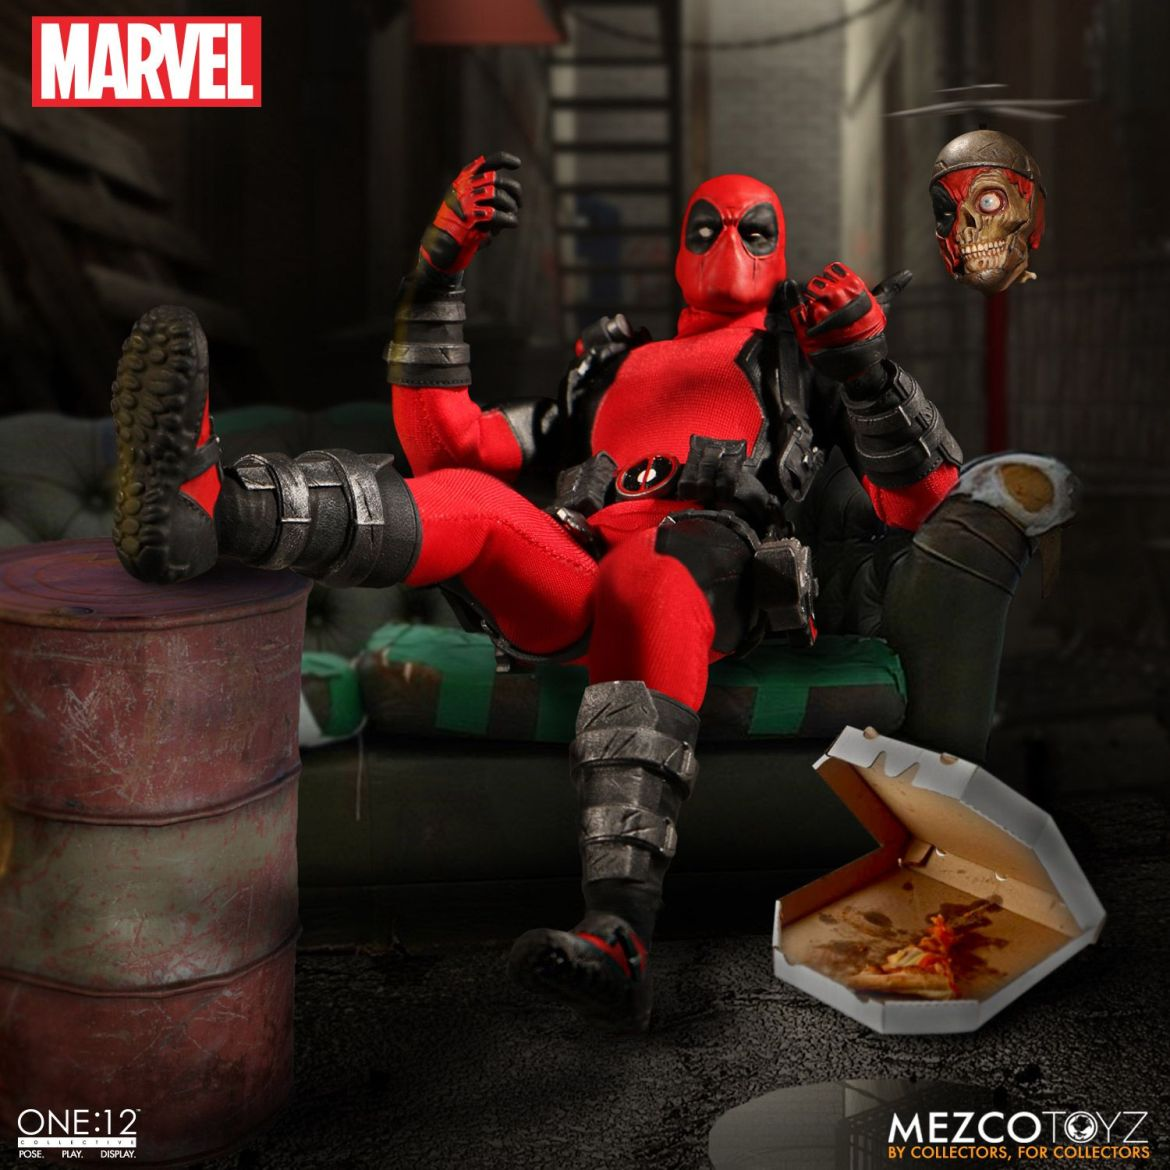 Deadpool One 12 Exclusive Figure up for Order!